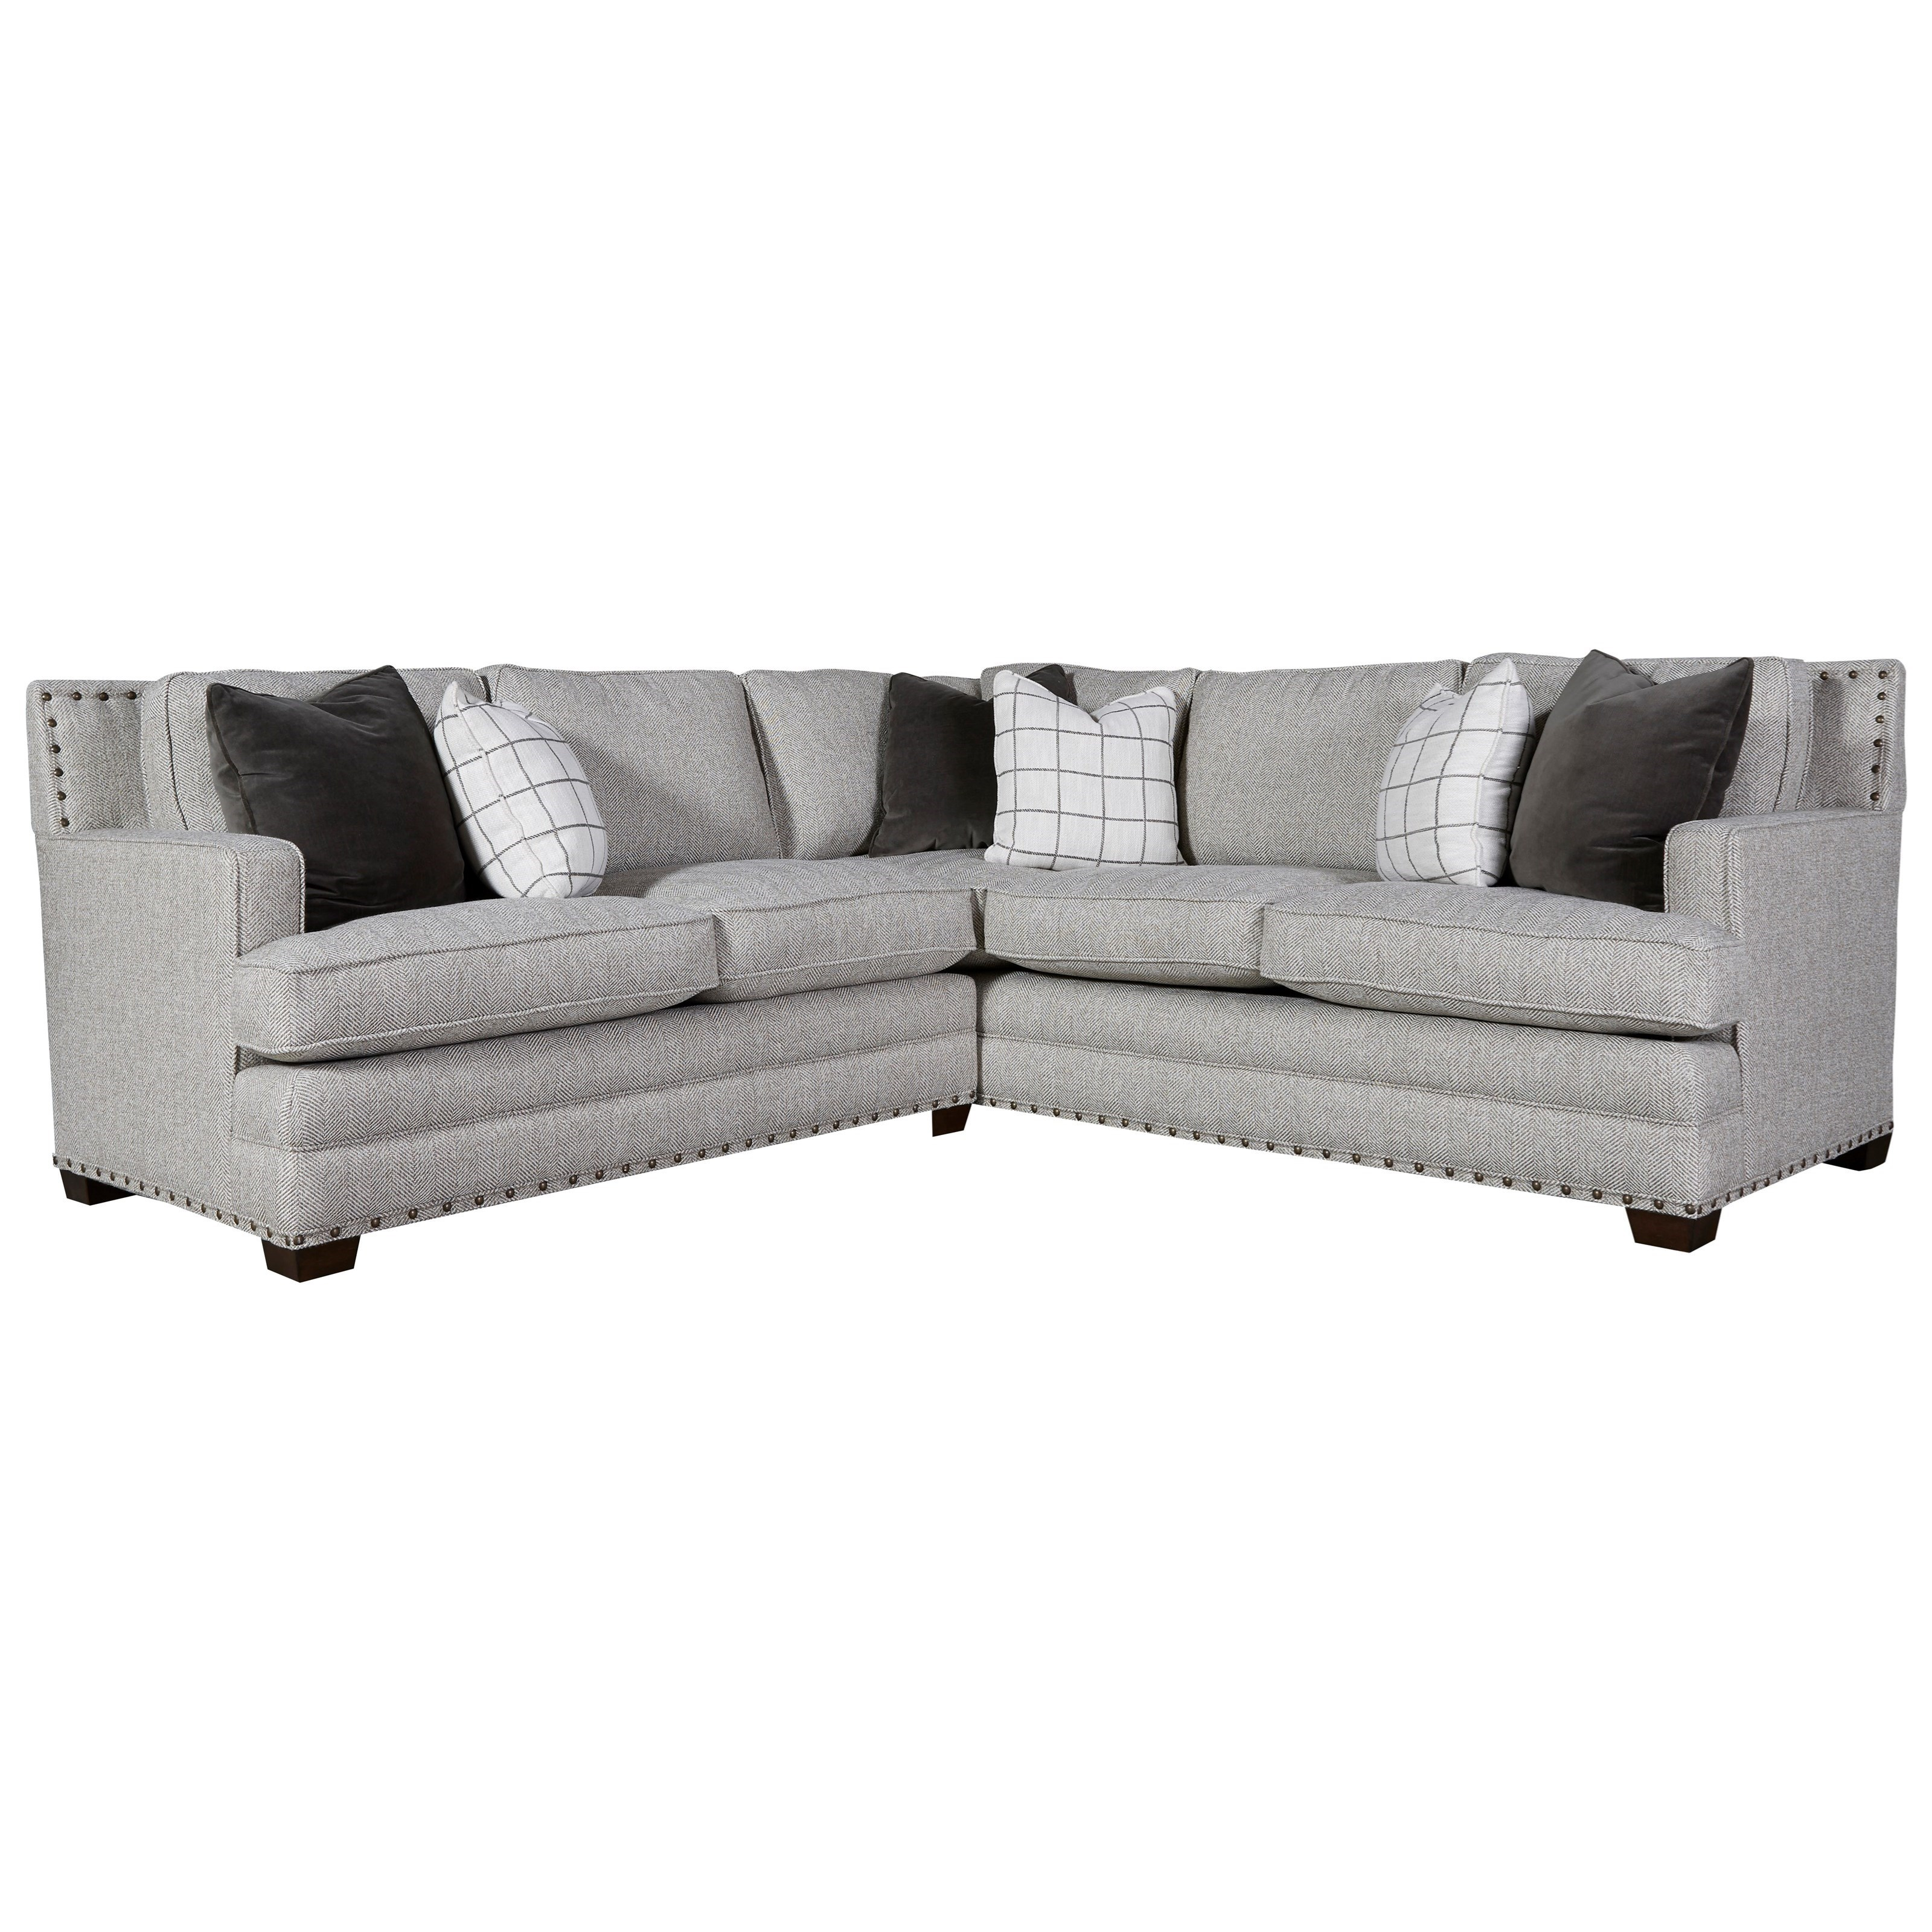 Riley Sectional Sofa by Universal at Baer's Furniture